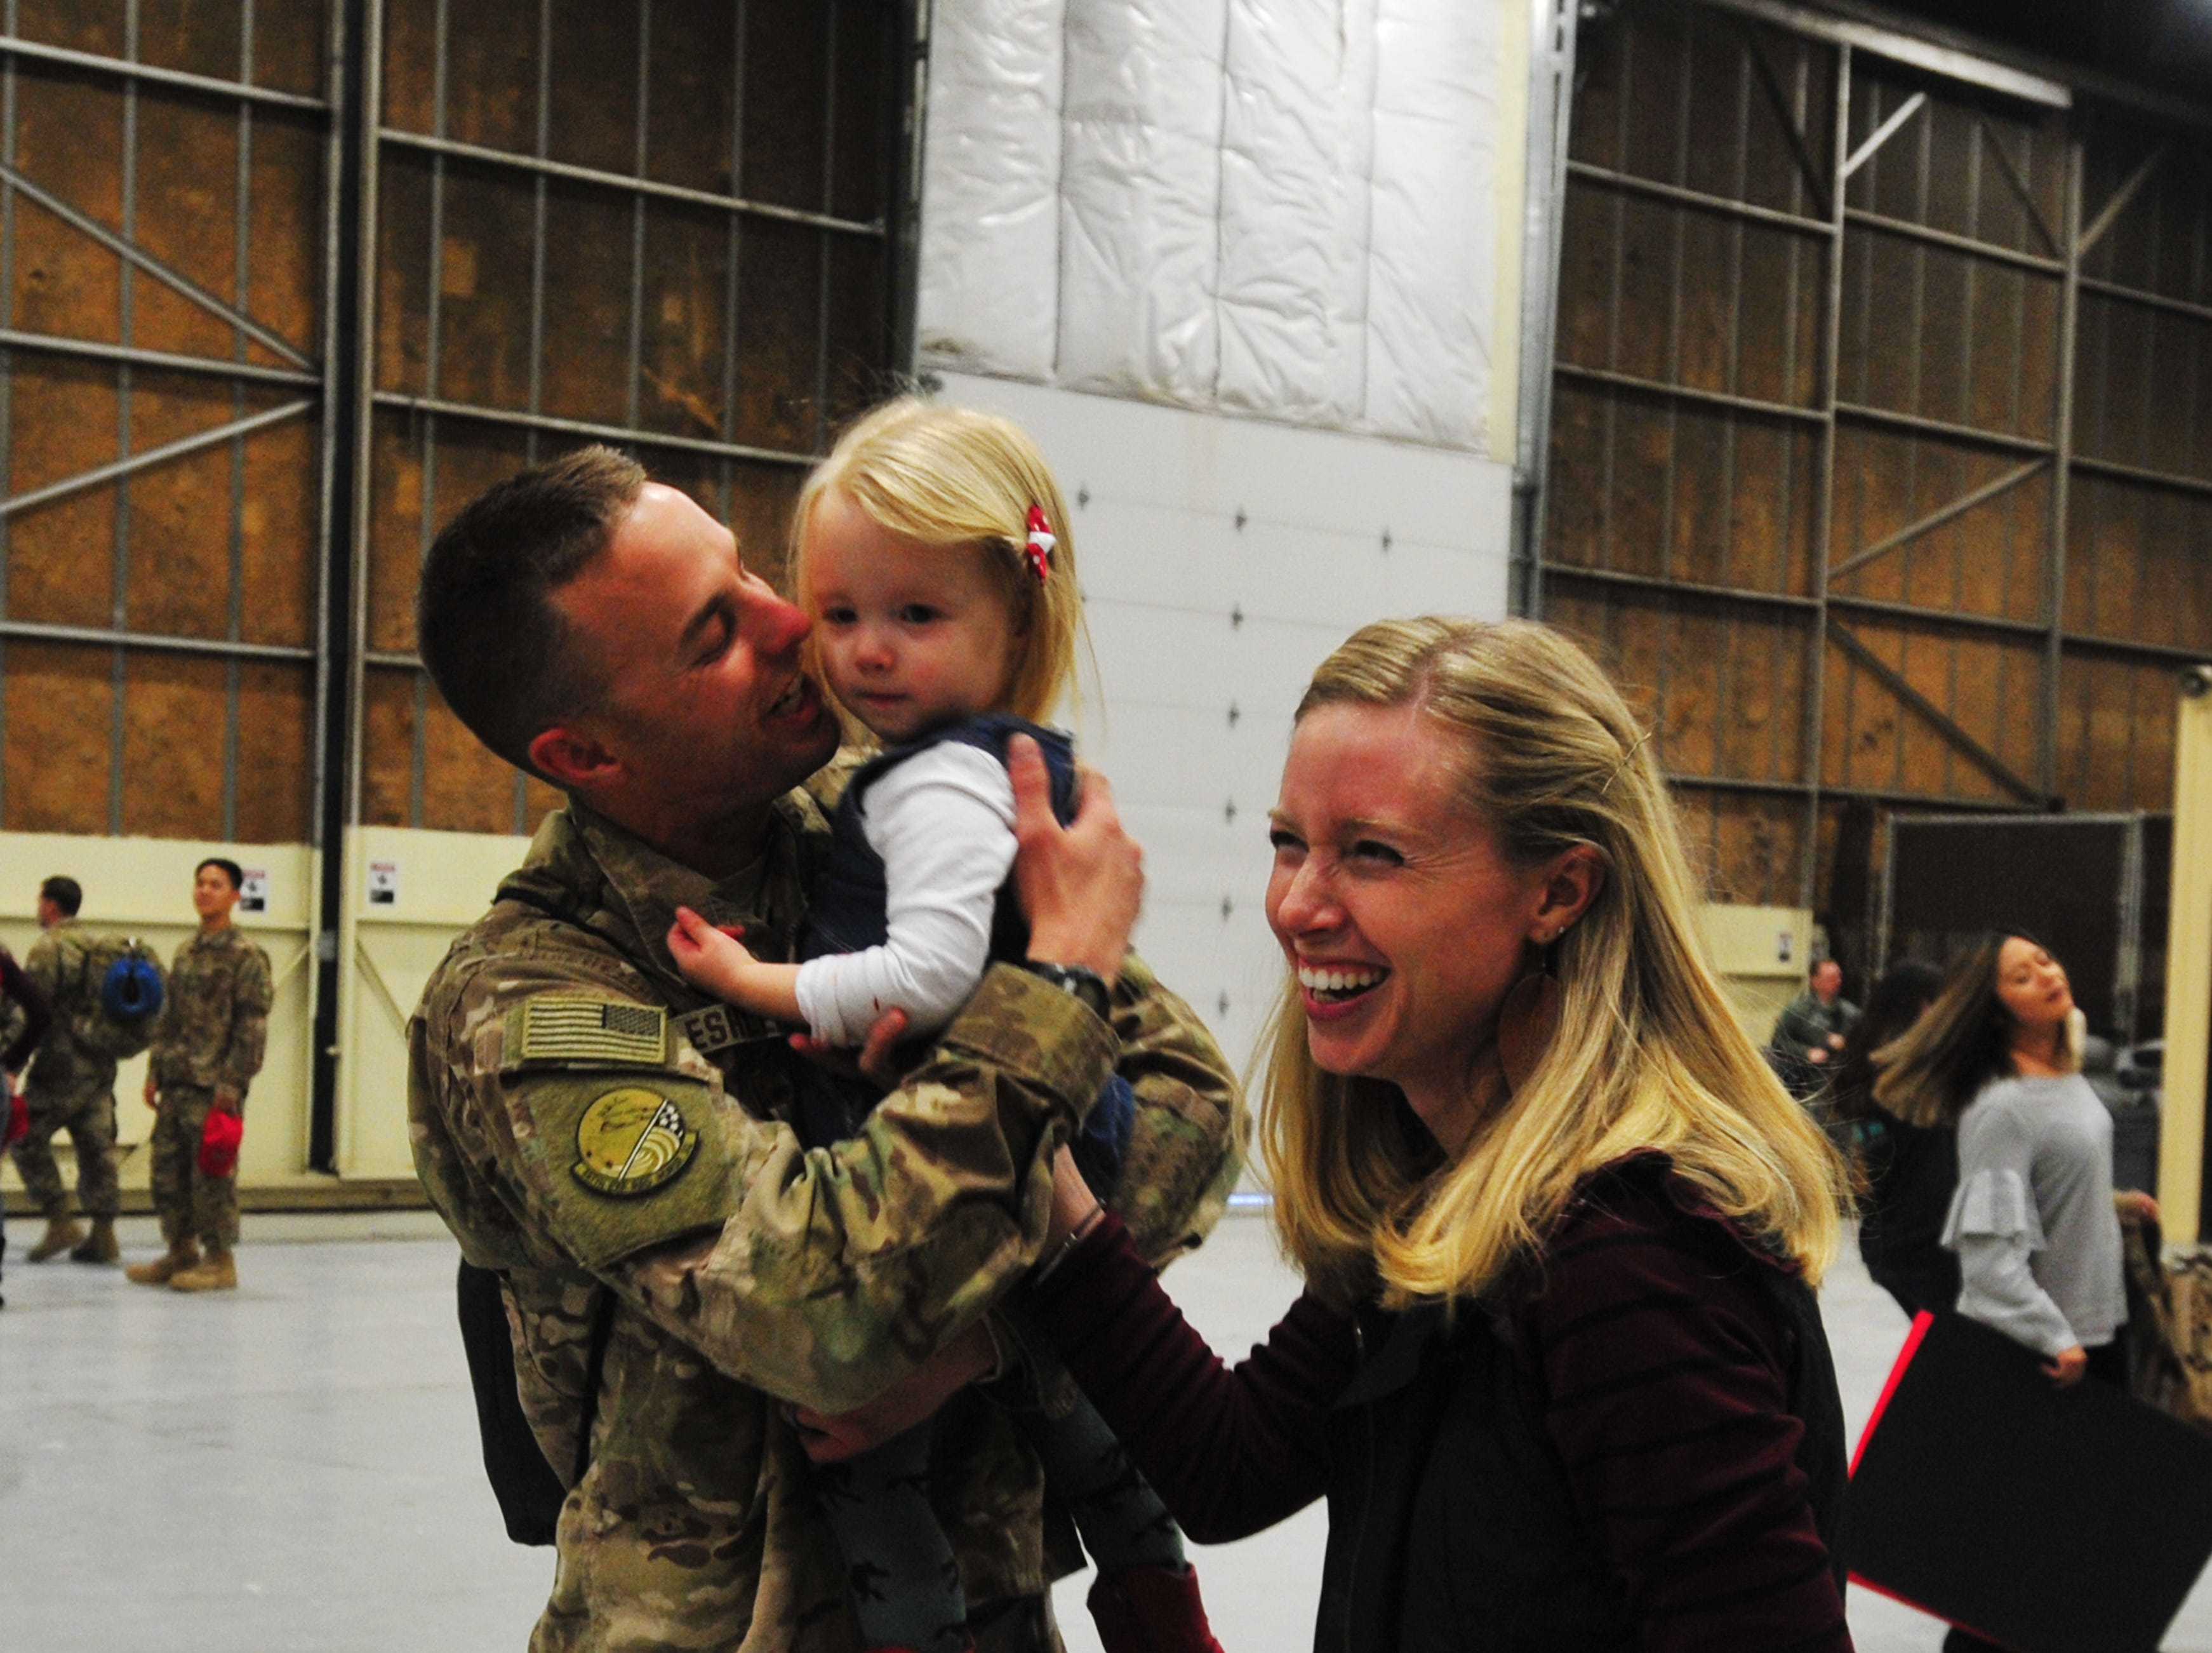 100 members of the 819th Red Horse Squadron are welcomed home by family and friends in a hanger at  Malmstrom Air Force Base, Monday afternoon, after a seven month deployment to the African country of Niger.